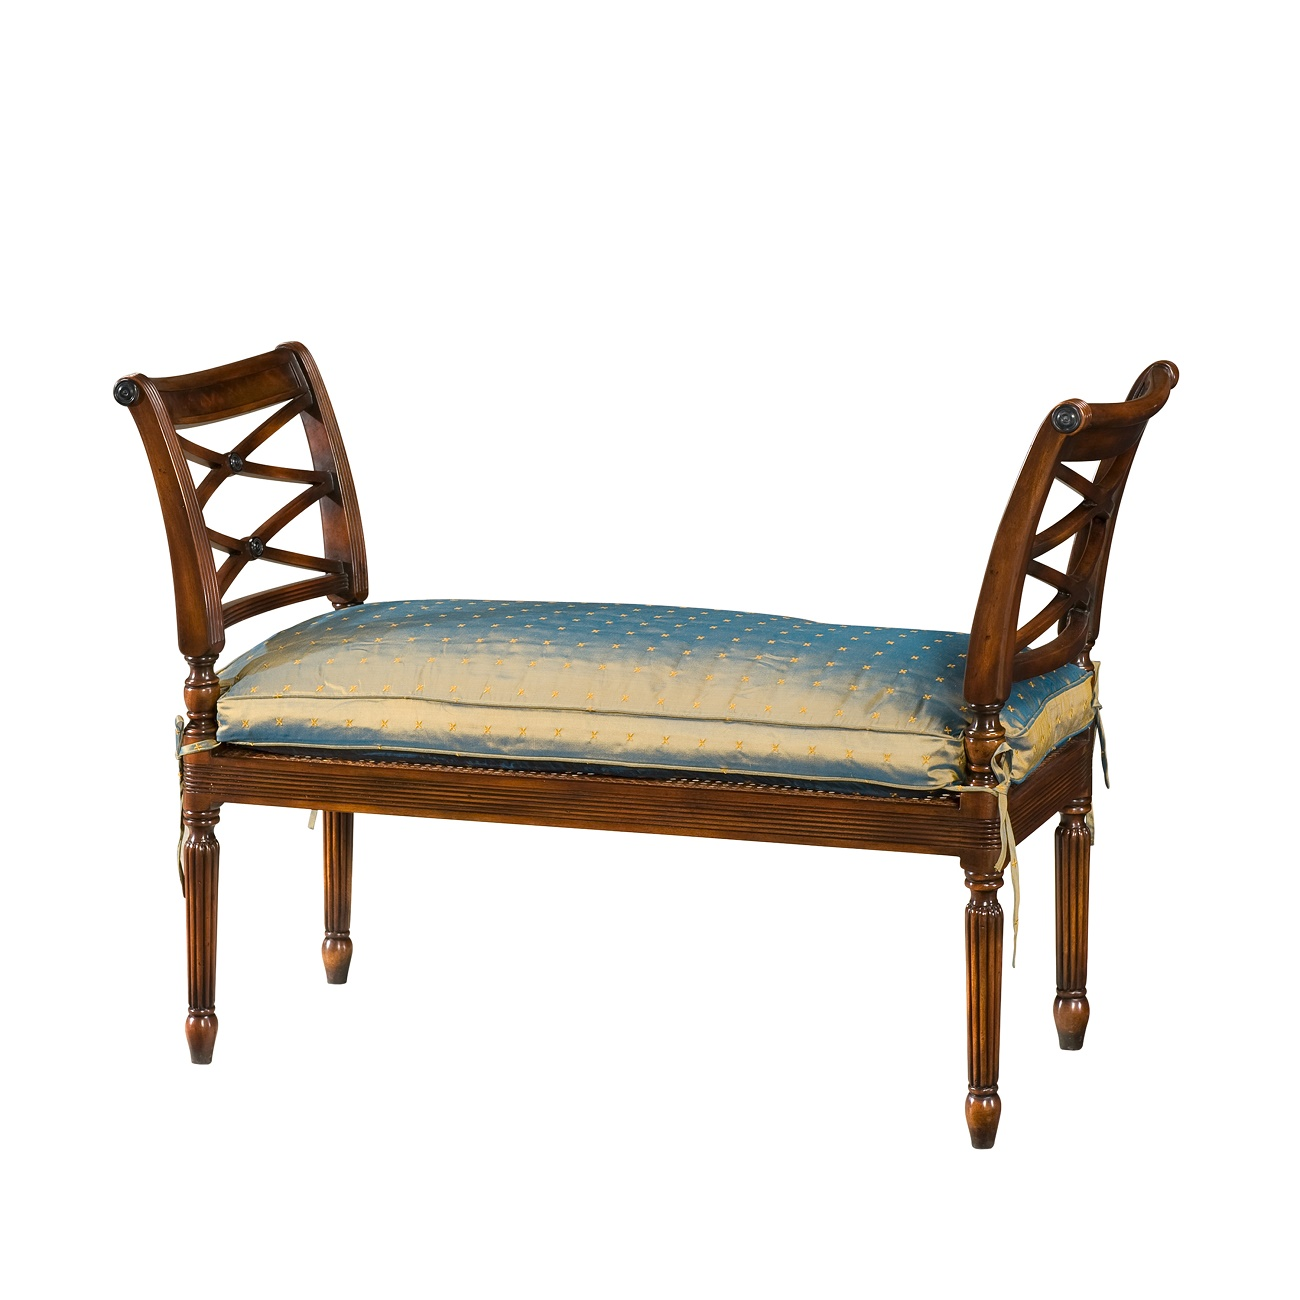 4500 039 Contemplation Bench theodore alexander